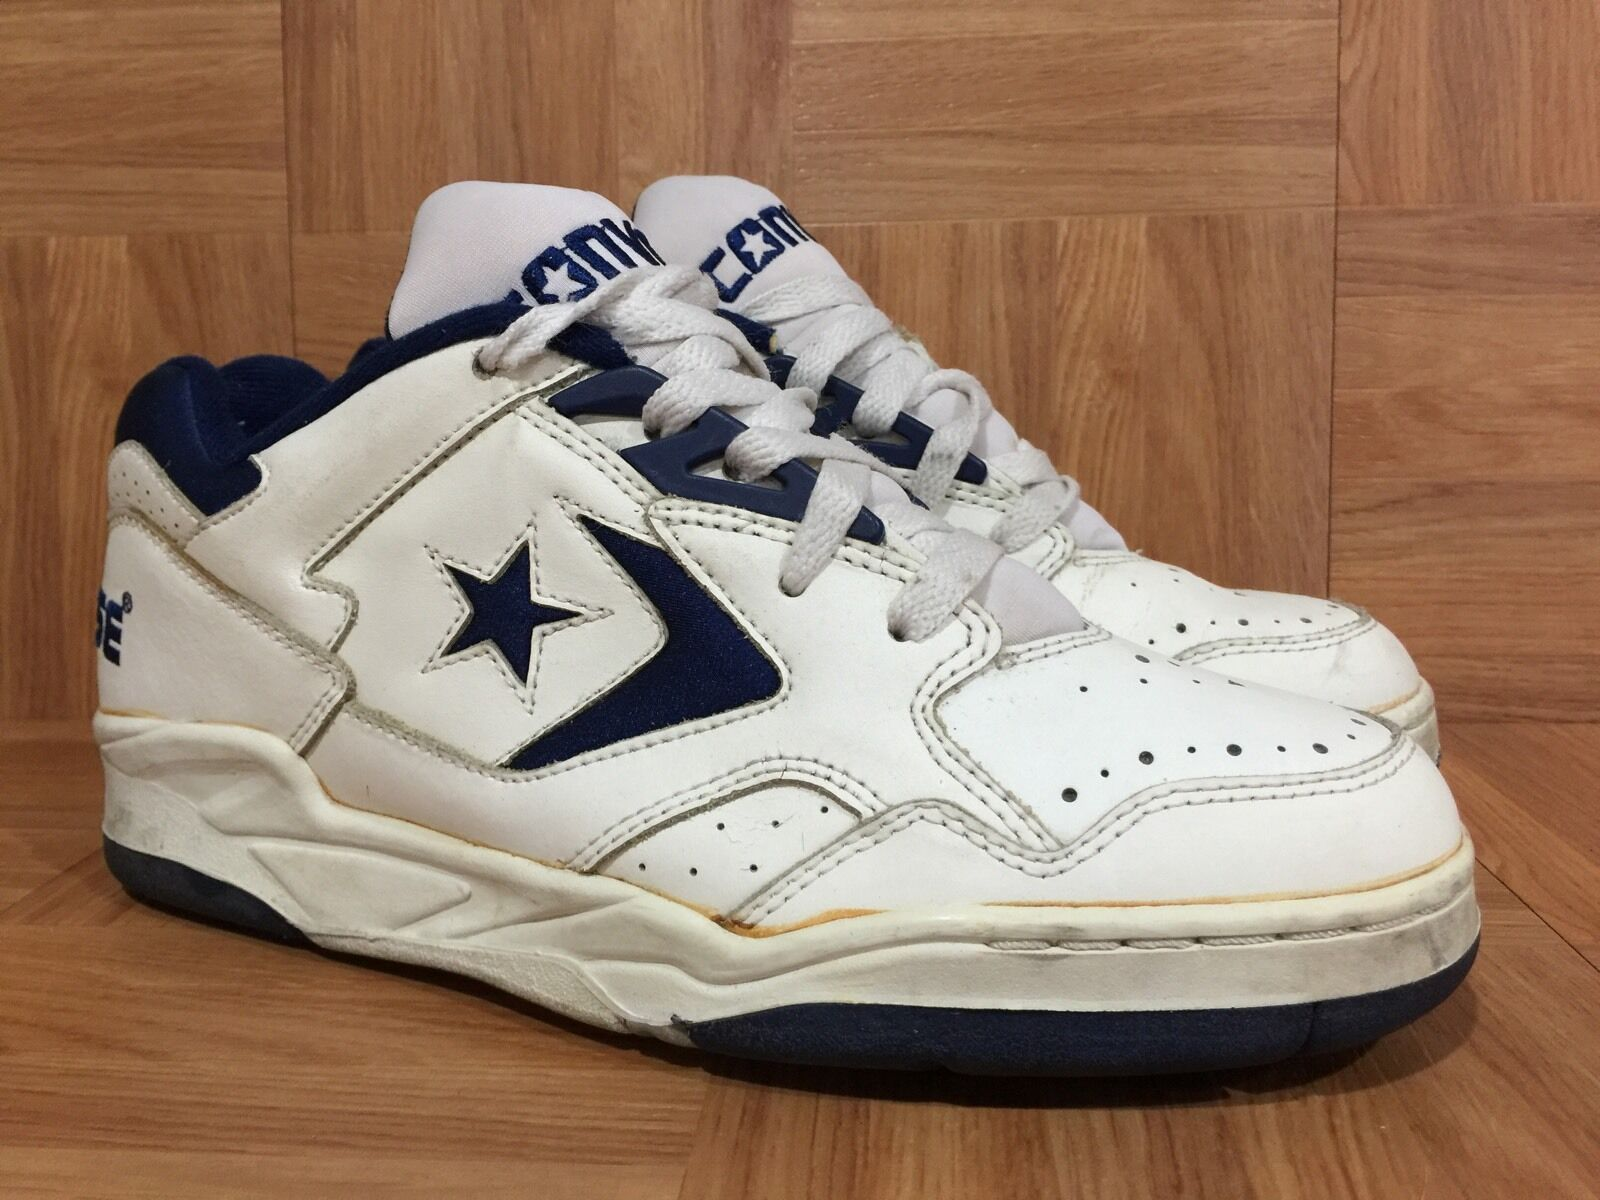 Vintage Converse Official shoes Of The NBA Basketball Sneakers Sz 7.5 Men's LE